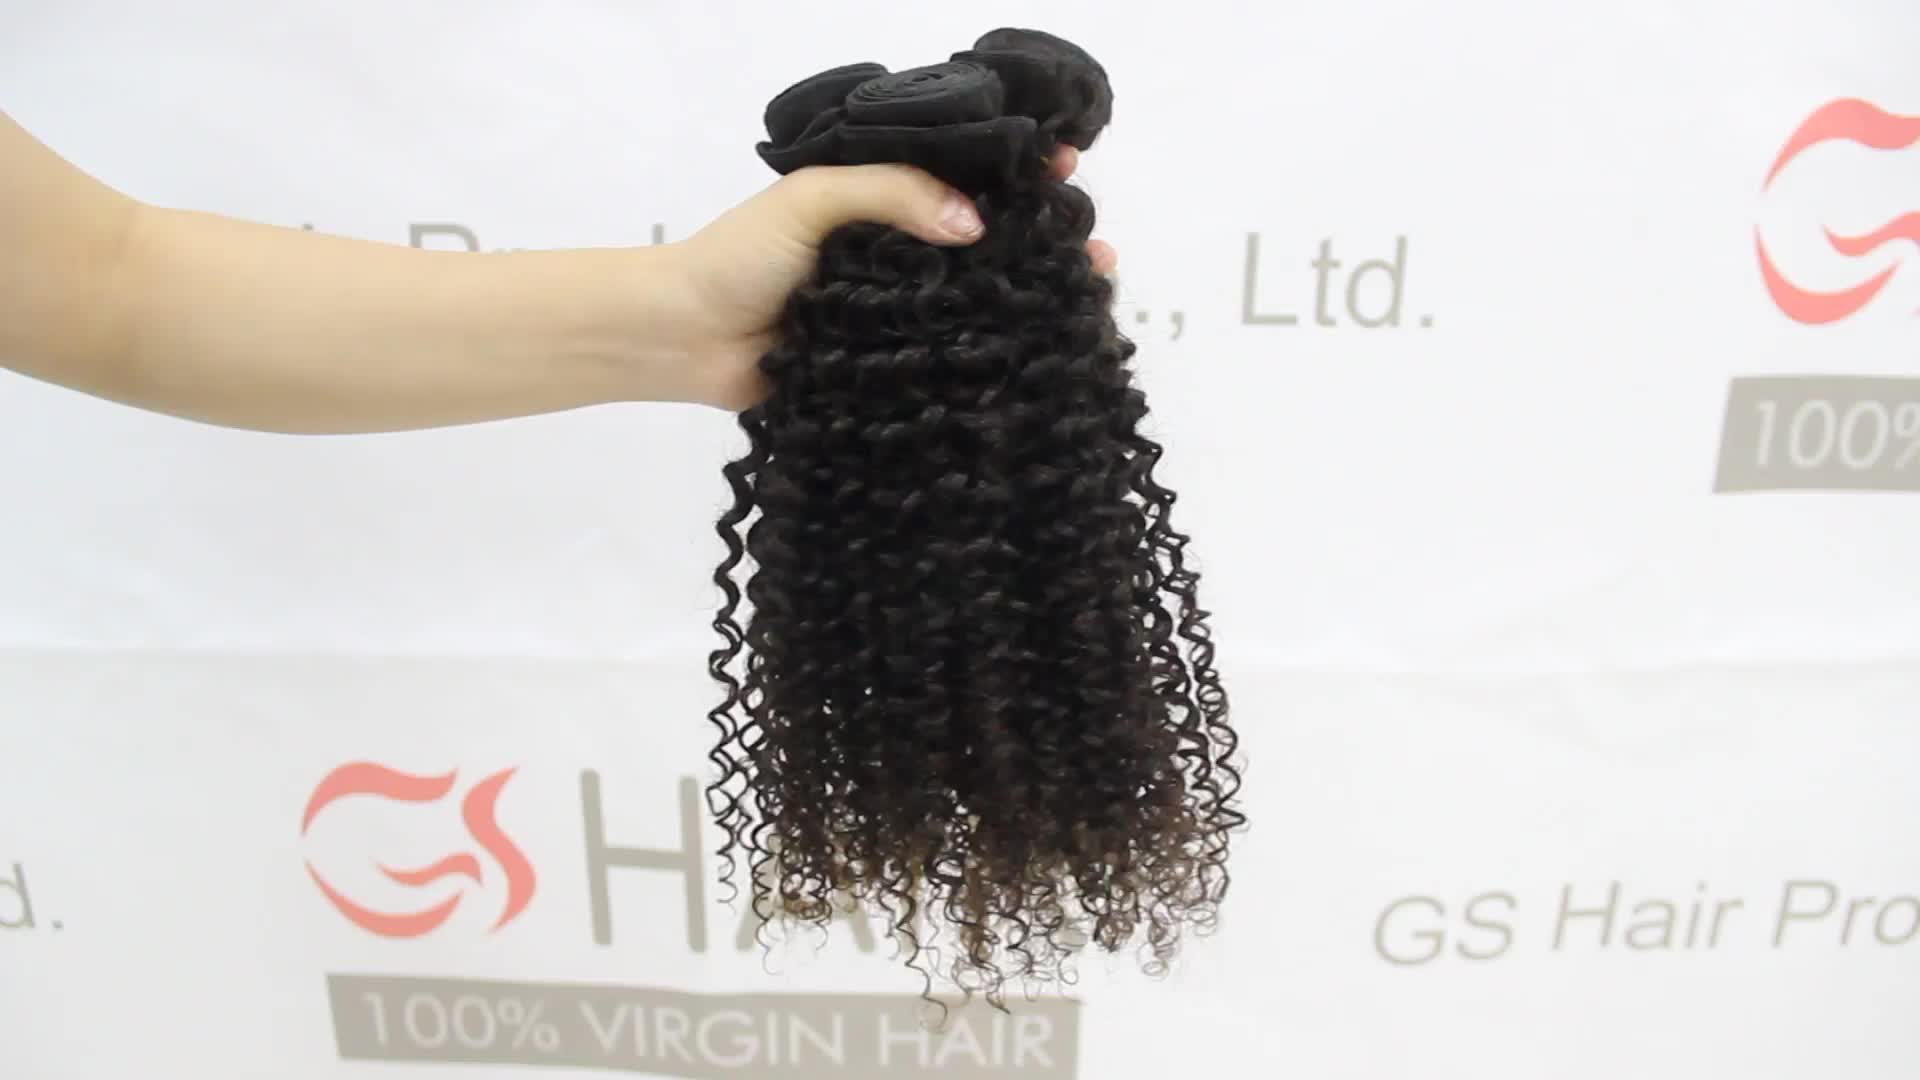 2019 Hot sale cuticle aligned Afro kinky curly hair extensions virgin brazilian hair vendor for black women